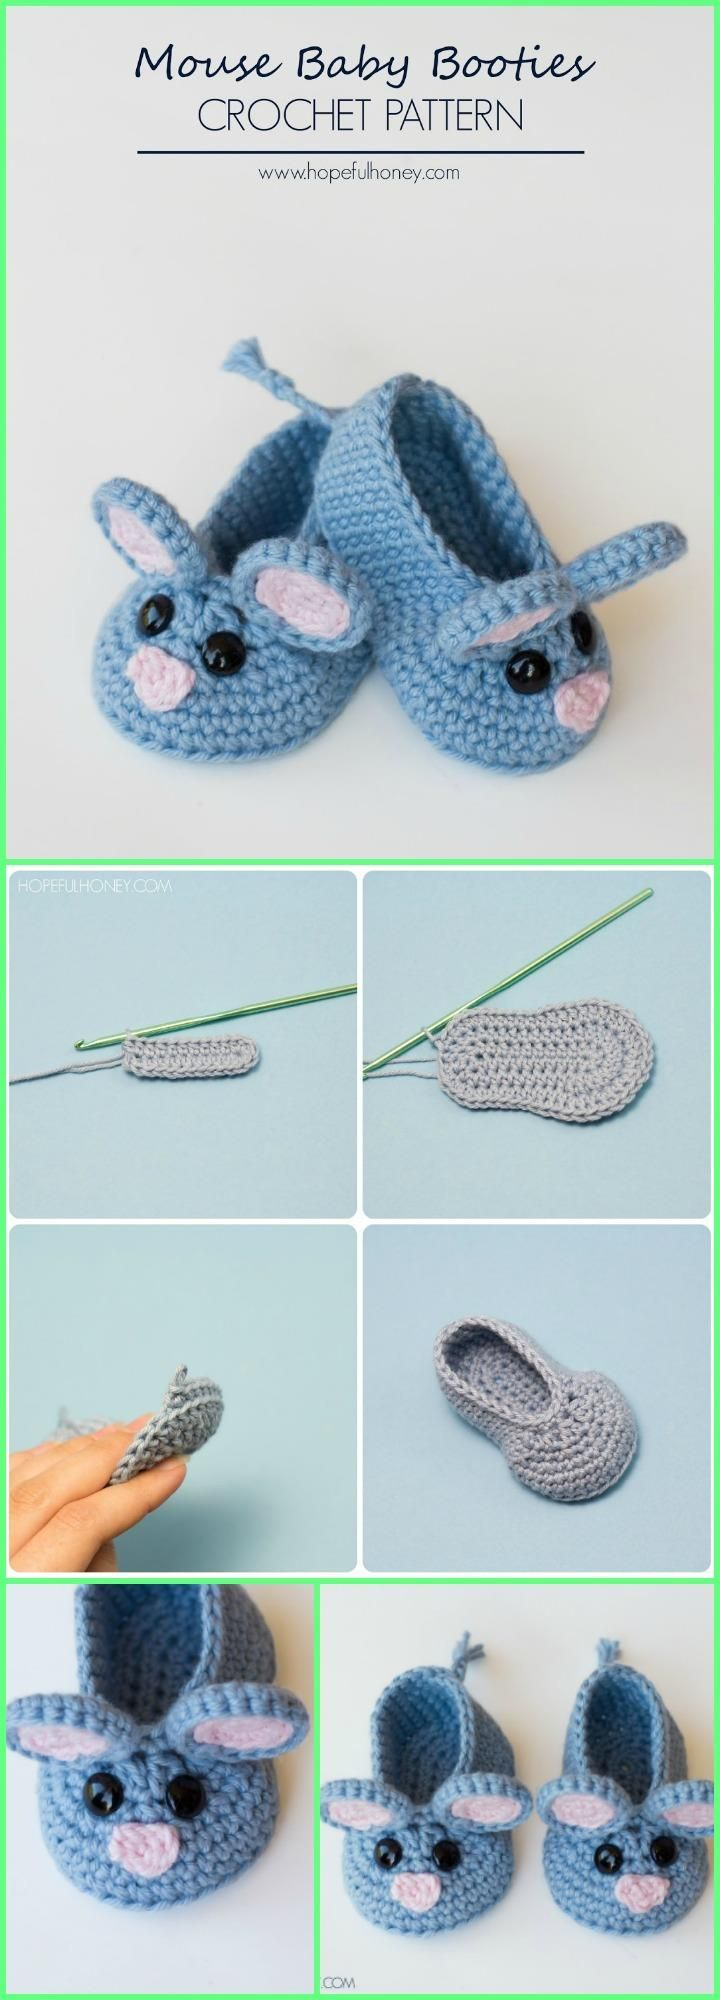 Super Cute Crochet Mouse Baby Booties - Top 40 Free Crochet Baby Booties Patterns